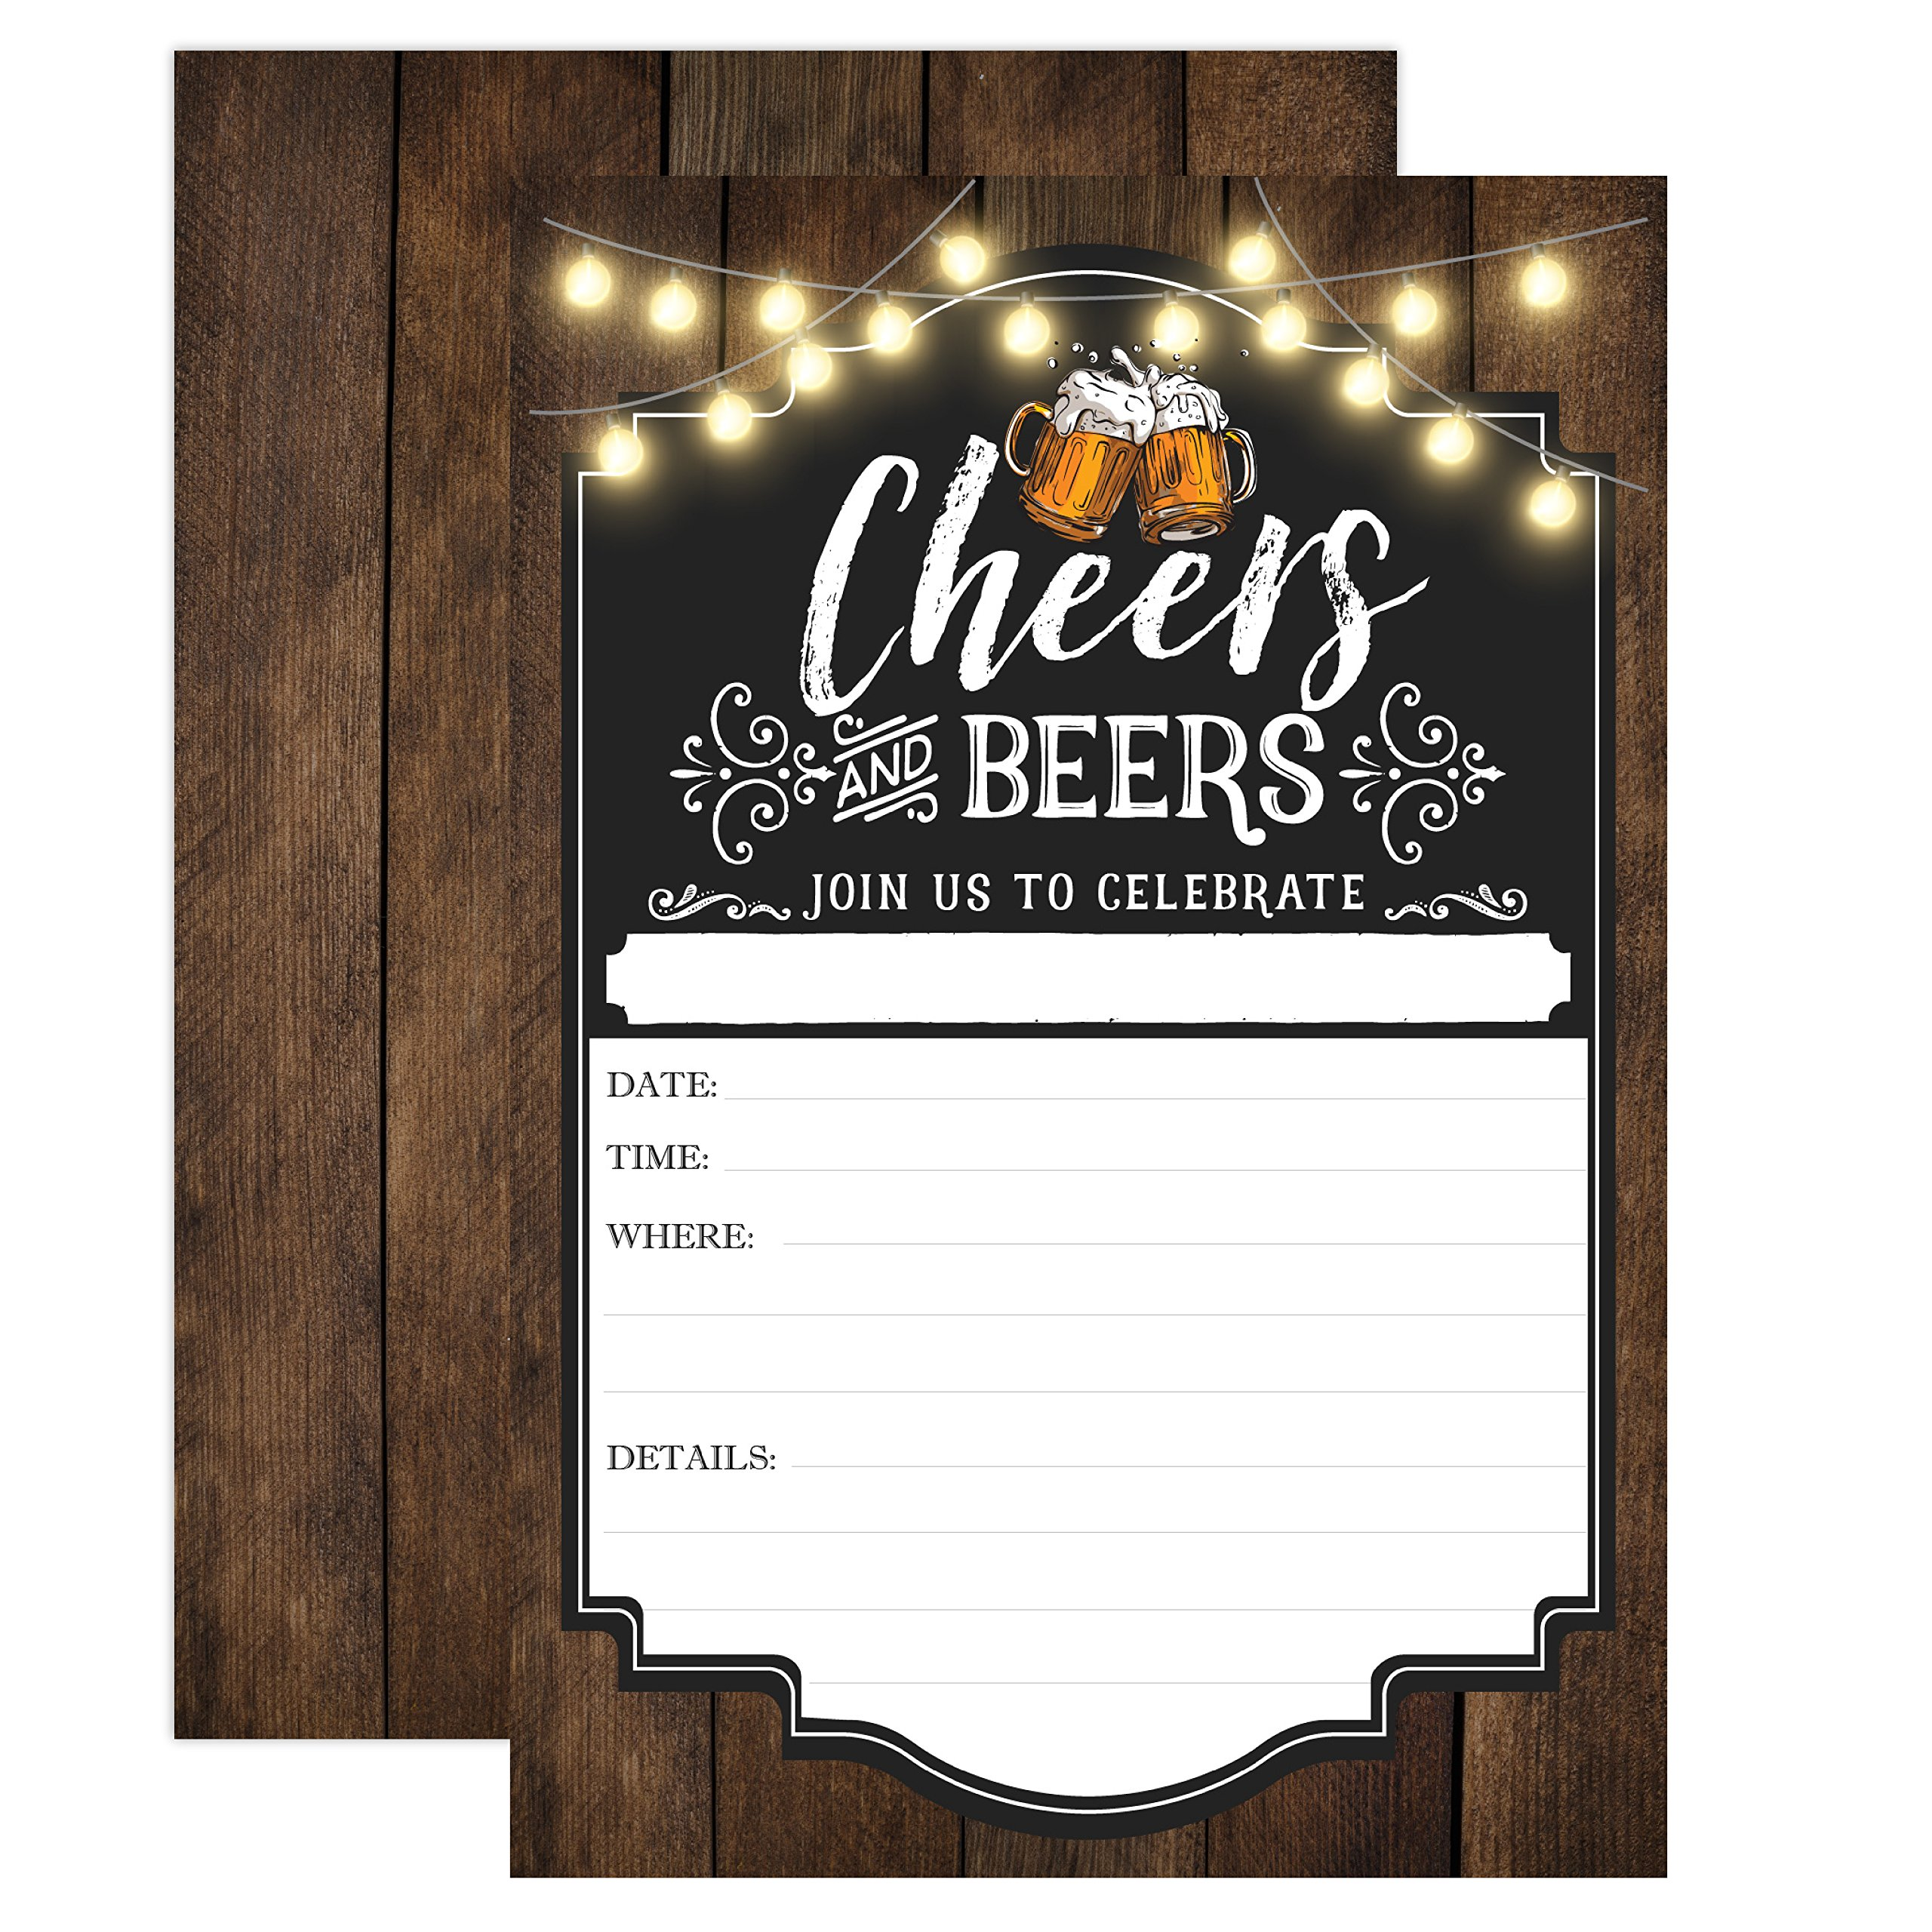 Cheers and Beers Birthday Invitation, Adult Birthday Party Invites, 30 years, 40 years, 50 years, 21 years, 20 Fill In Invitations With Envelopes by Your Main Event Prints